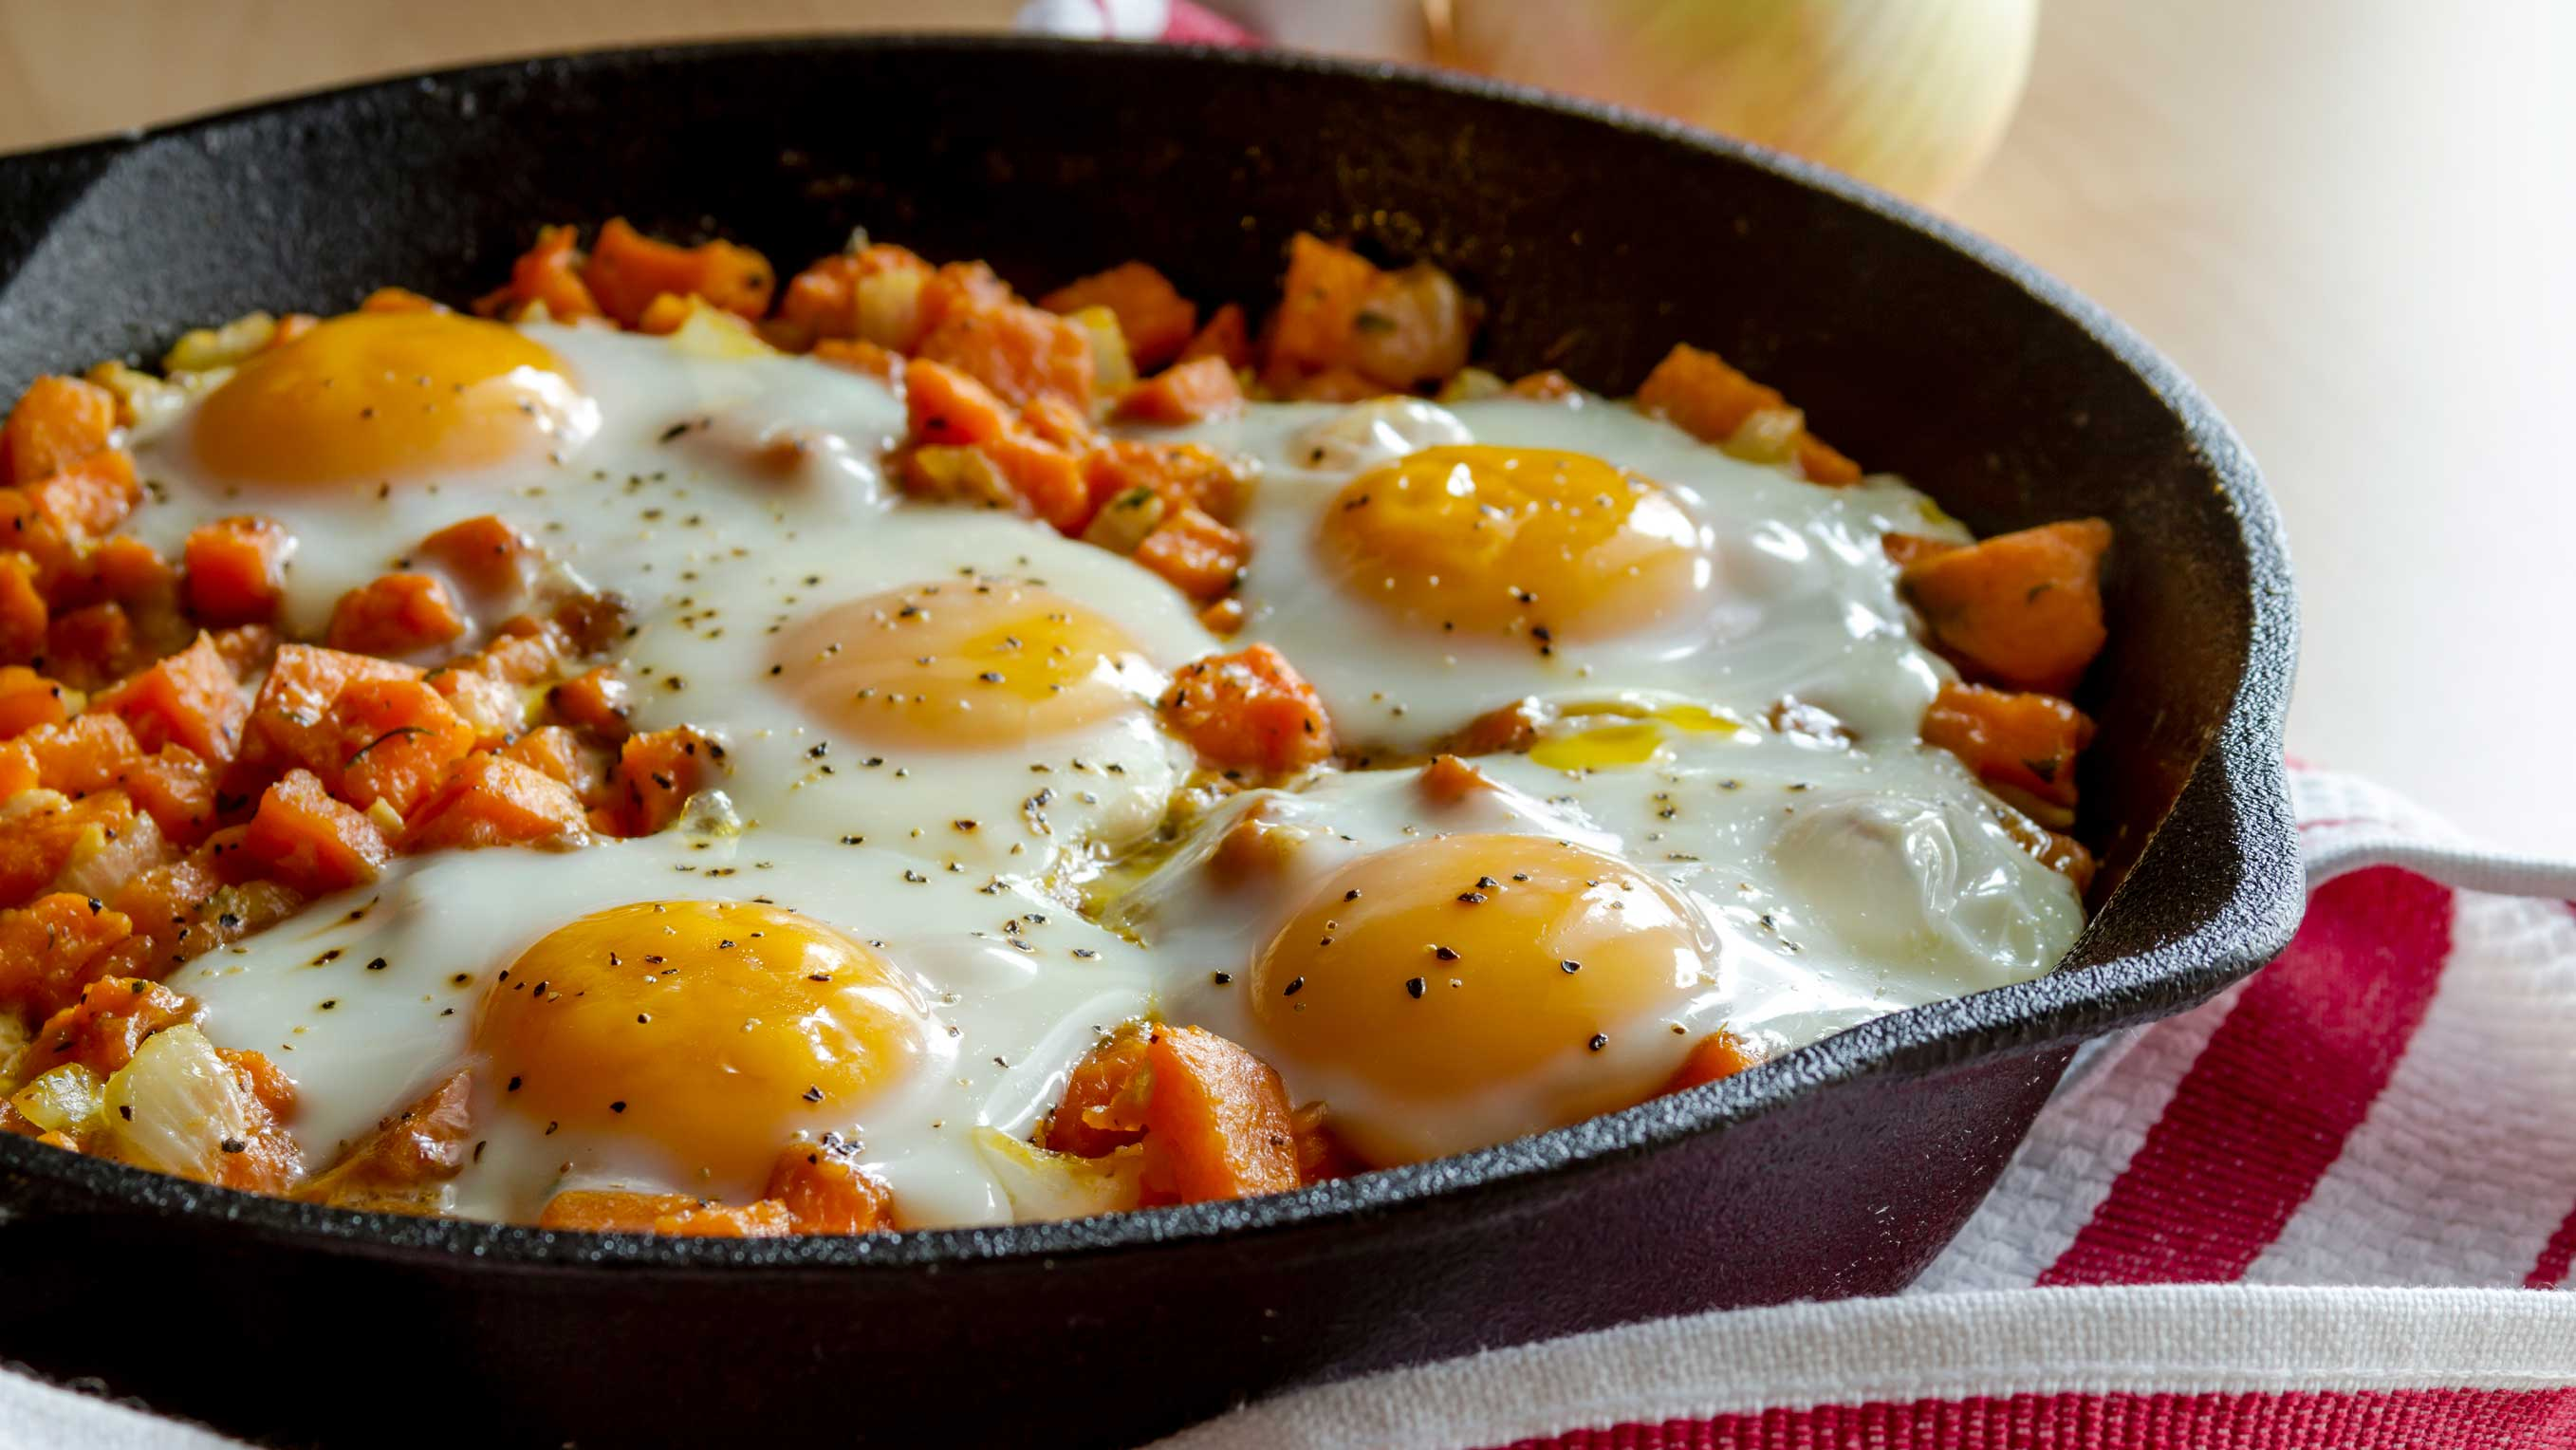 What Do our ACE Pros Eat for Breakfast? | American Council on Exercise | Expert Articles | 8/24/2016